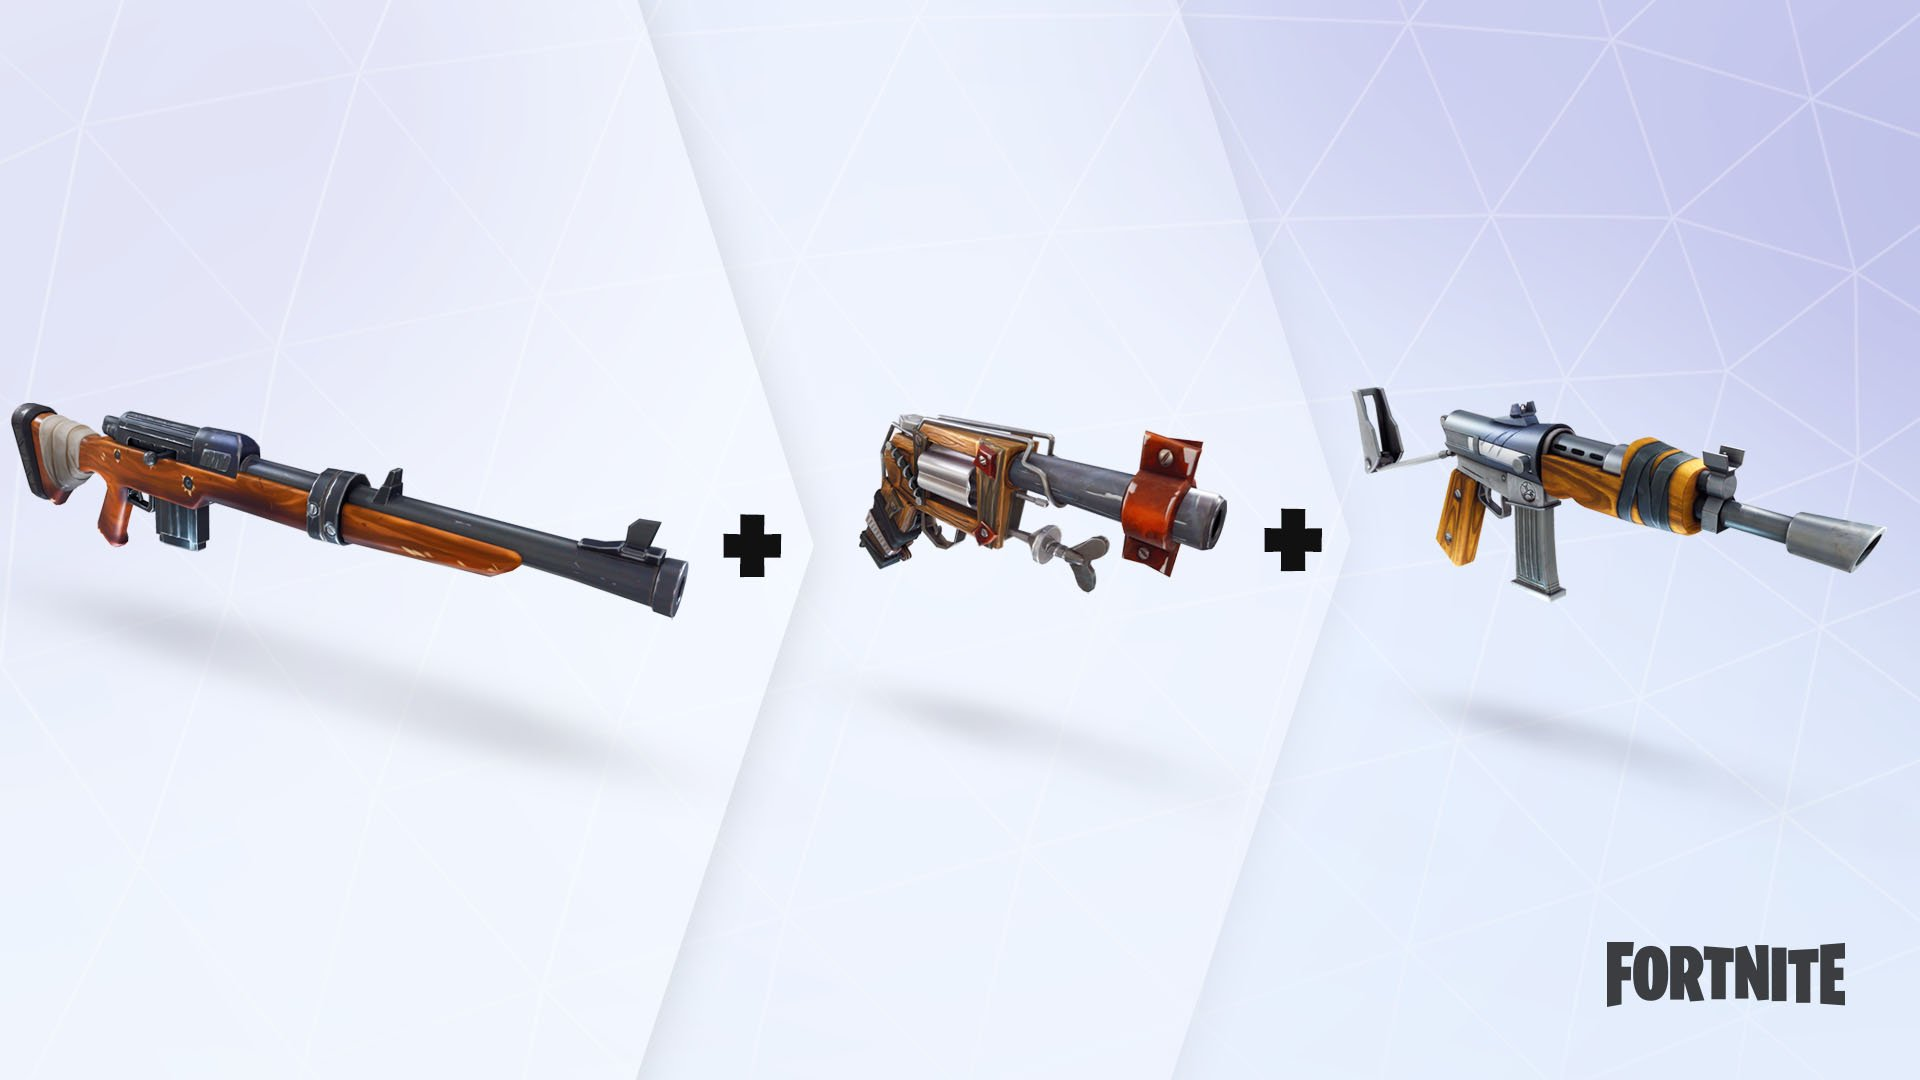 Fortnite On Twitter Bullseye And Bolt Slinger Acquired Keep